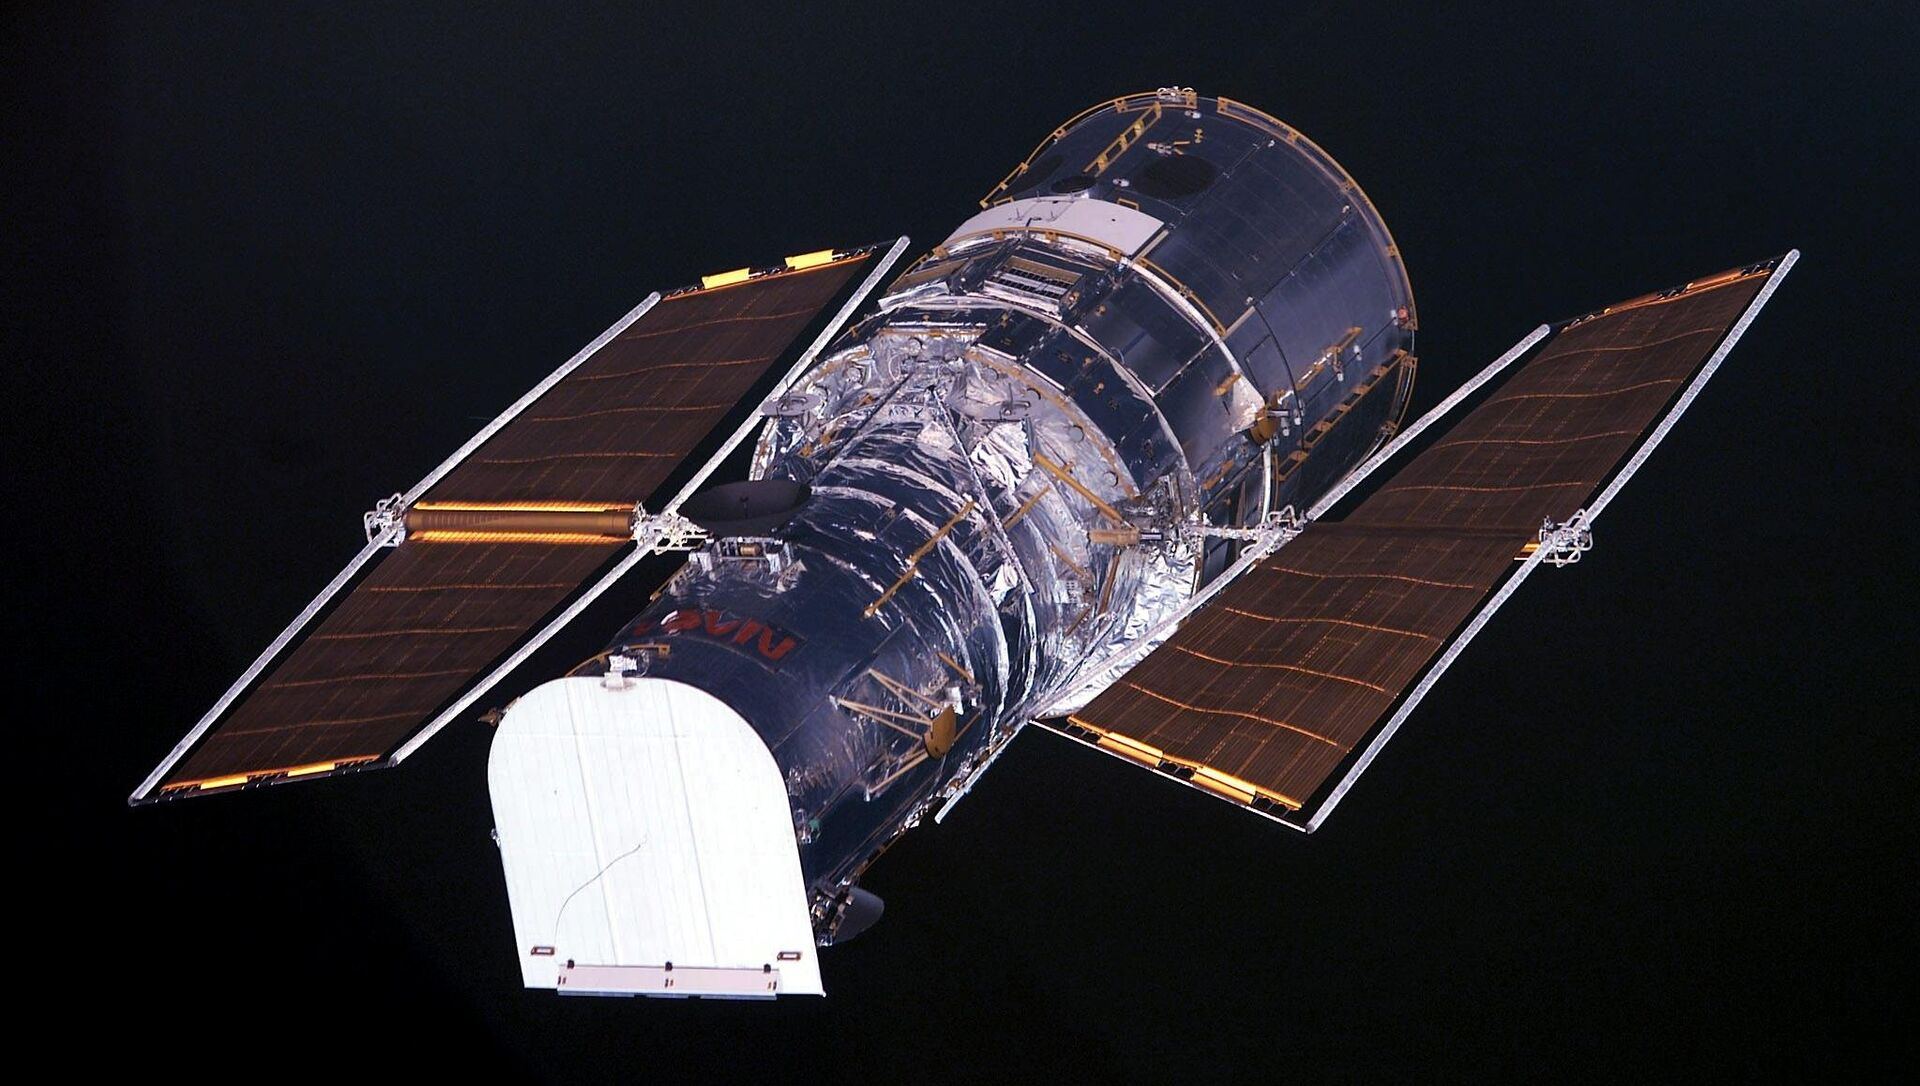 The Hubble Space Telescope as seen from the US space shuttle Columbia (file) - Sputnik International, 1920, 24.07.2021